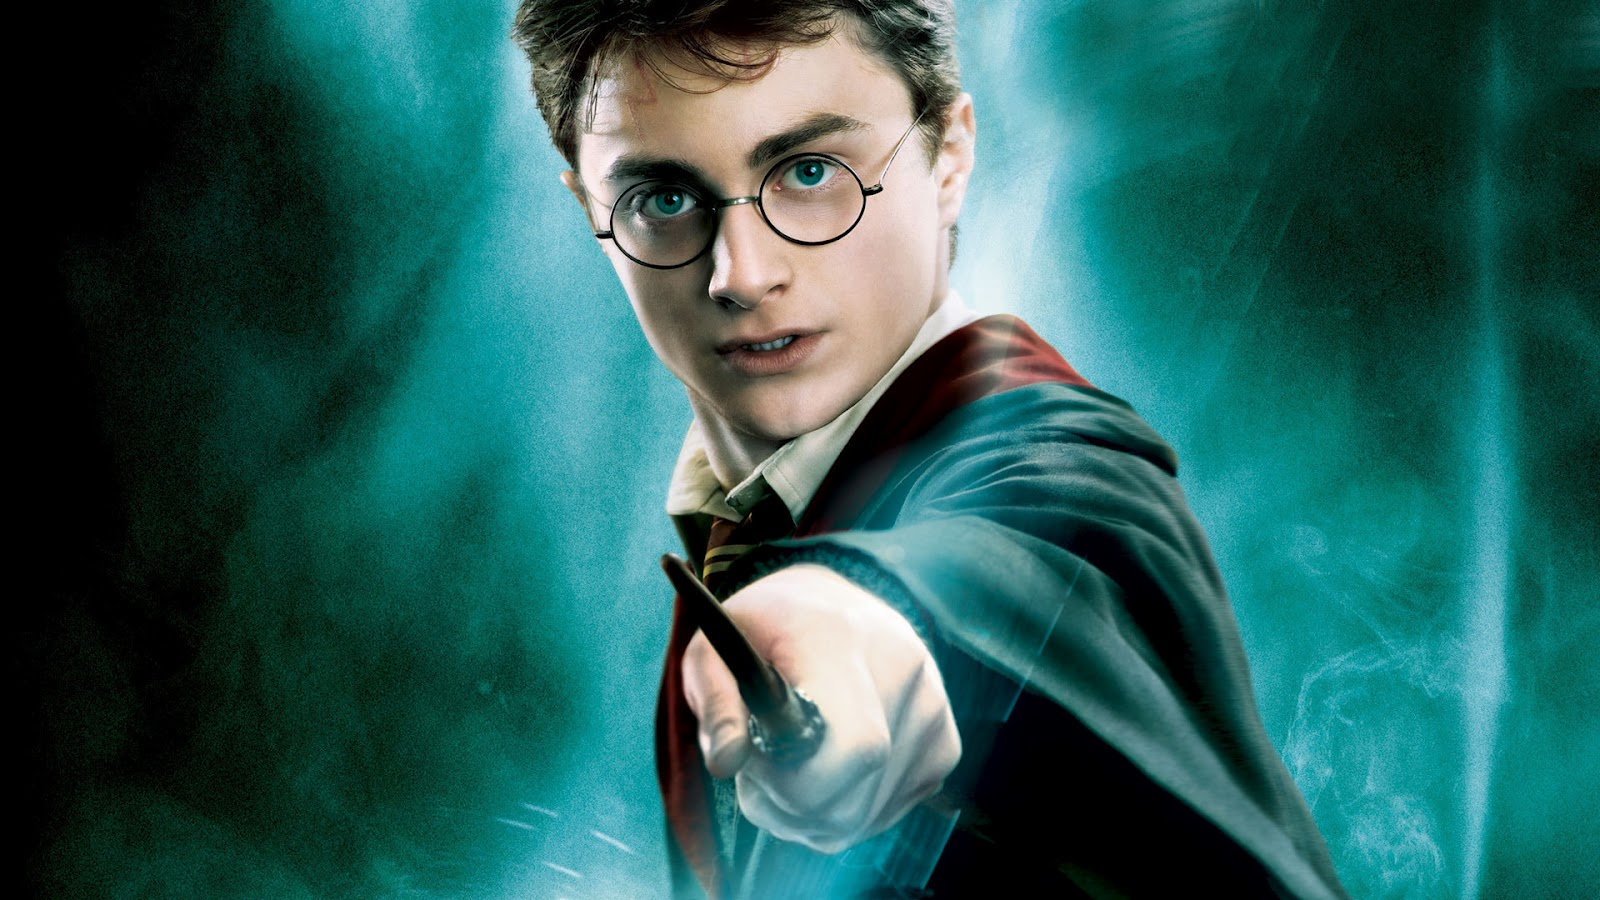 http://1.bp.blogspot.com/-3q8ZtQglLFQ/UBHwJ2btwMI/AAAAAAAACns/ytmJOMIvNmk/s1600/Harry+Potter+and+the+Order+of+the+Phoenix.jpg